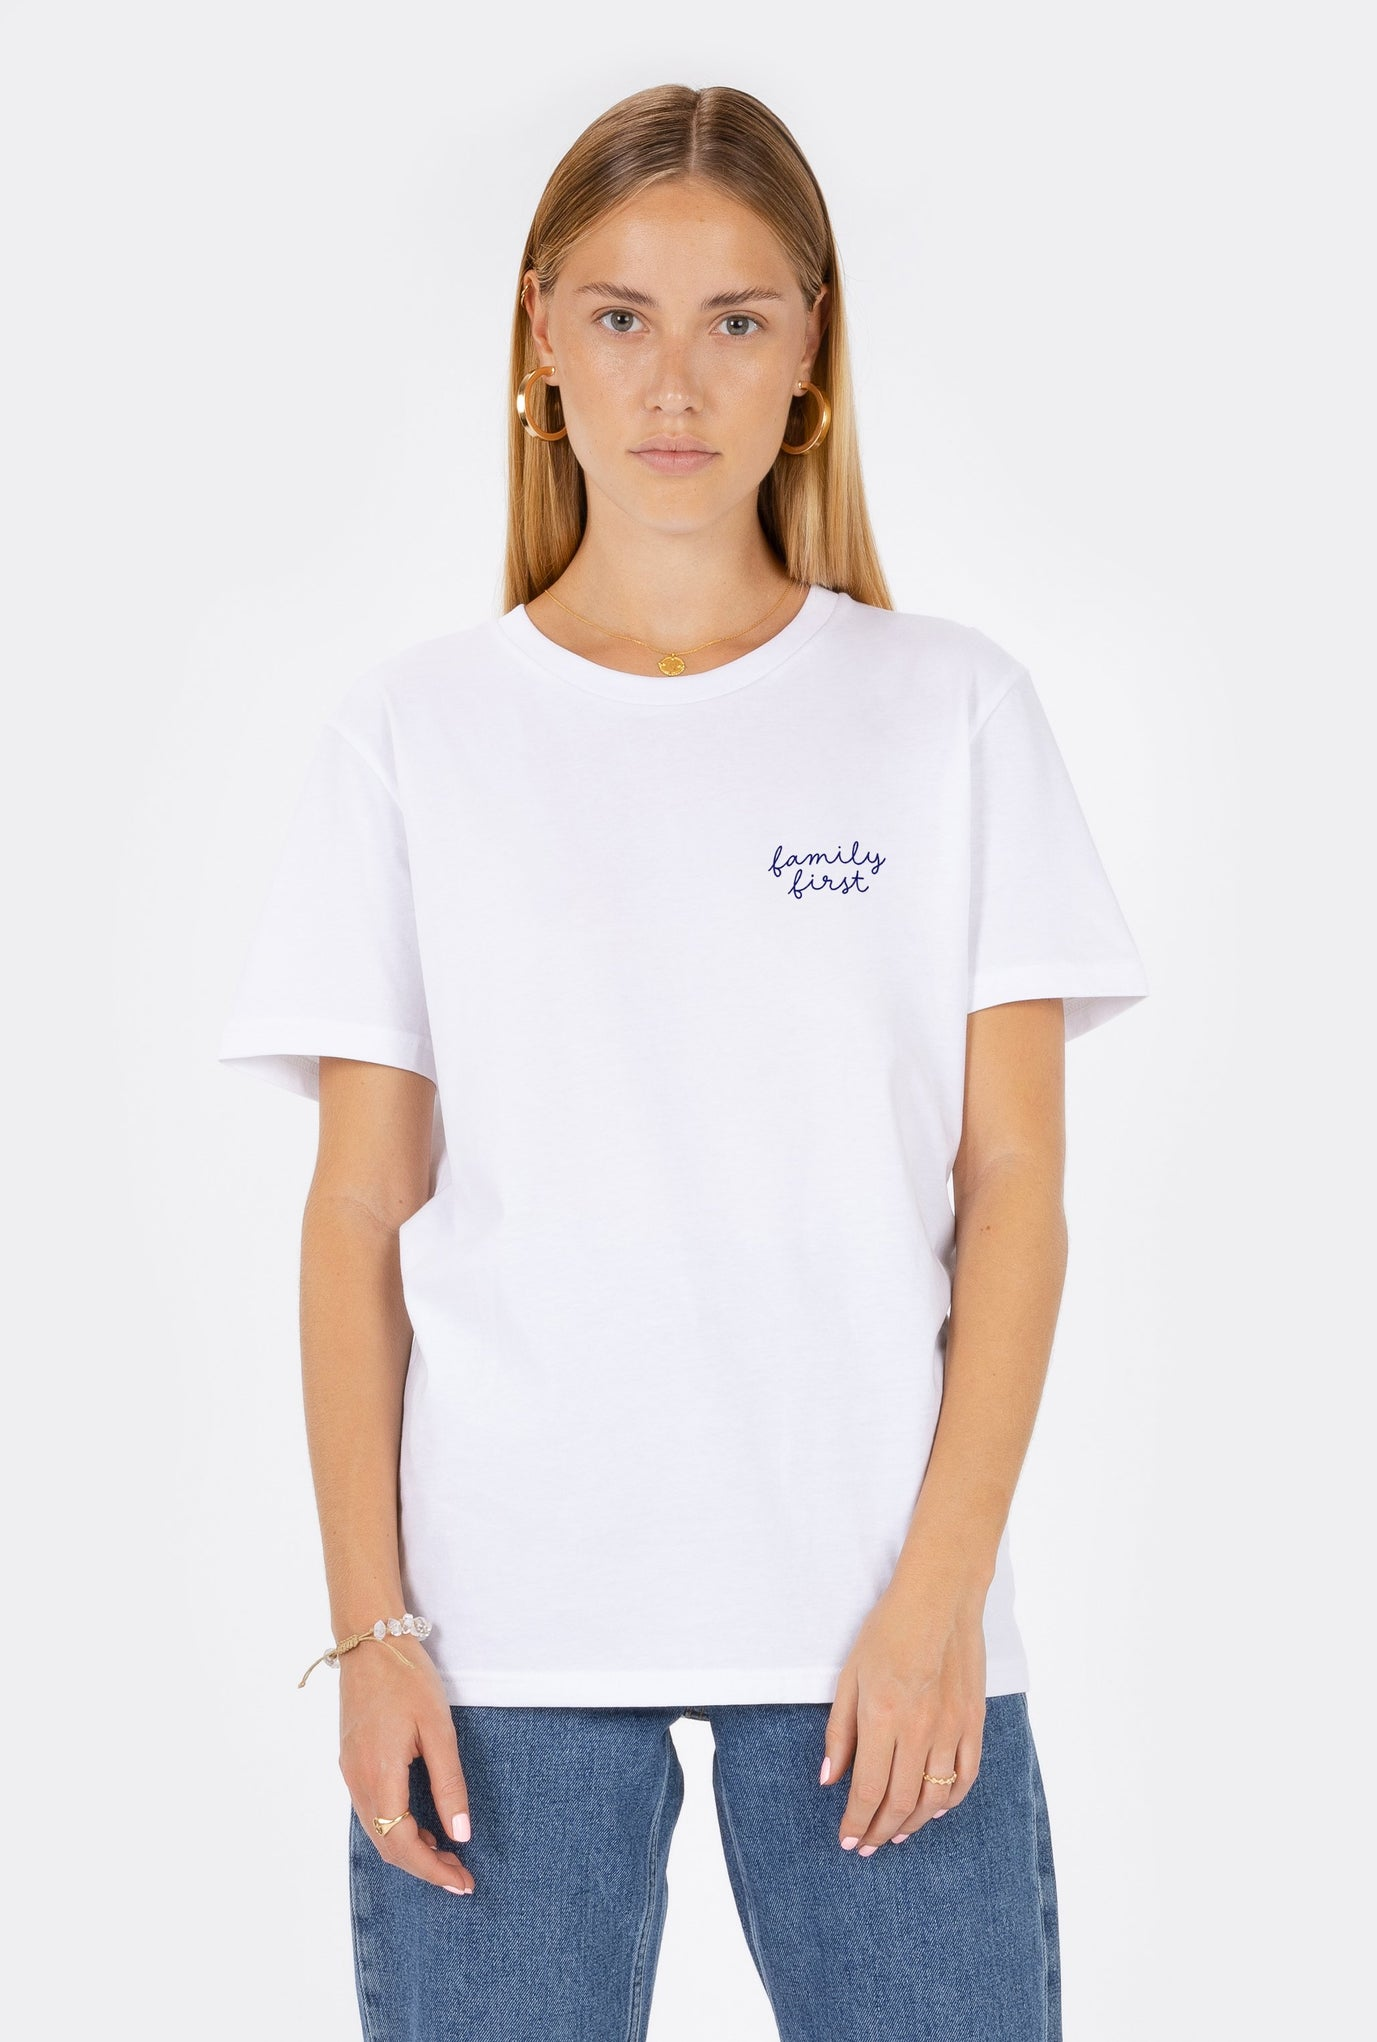 T-Shirt S/S Family First - Embroidered